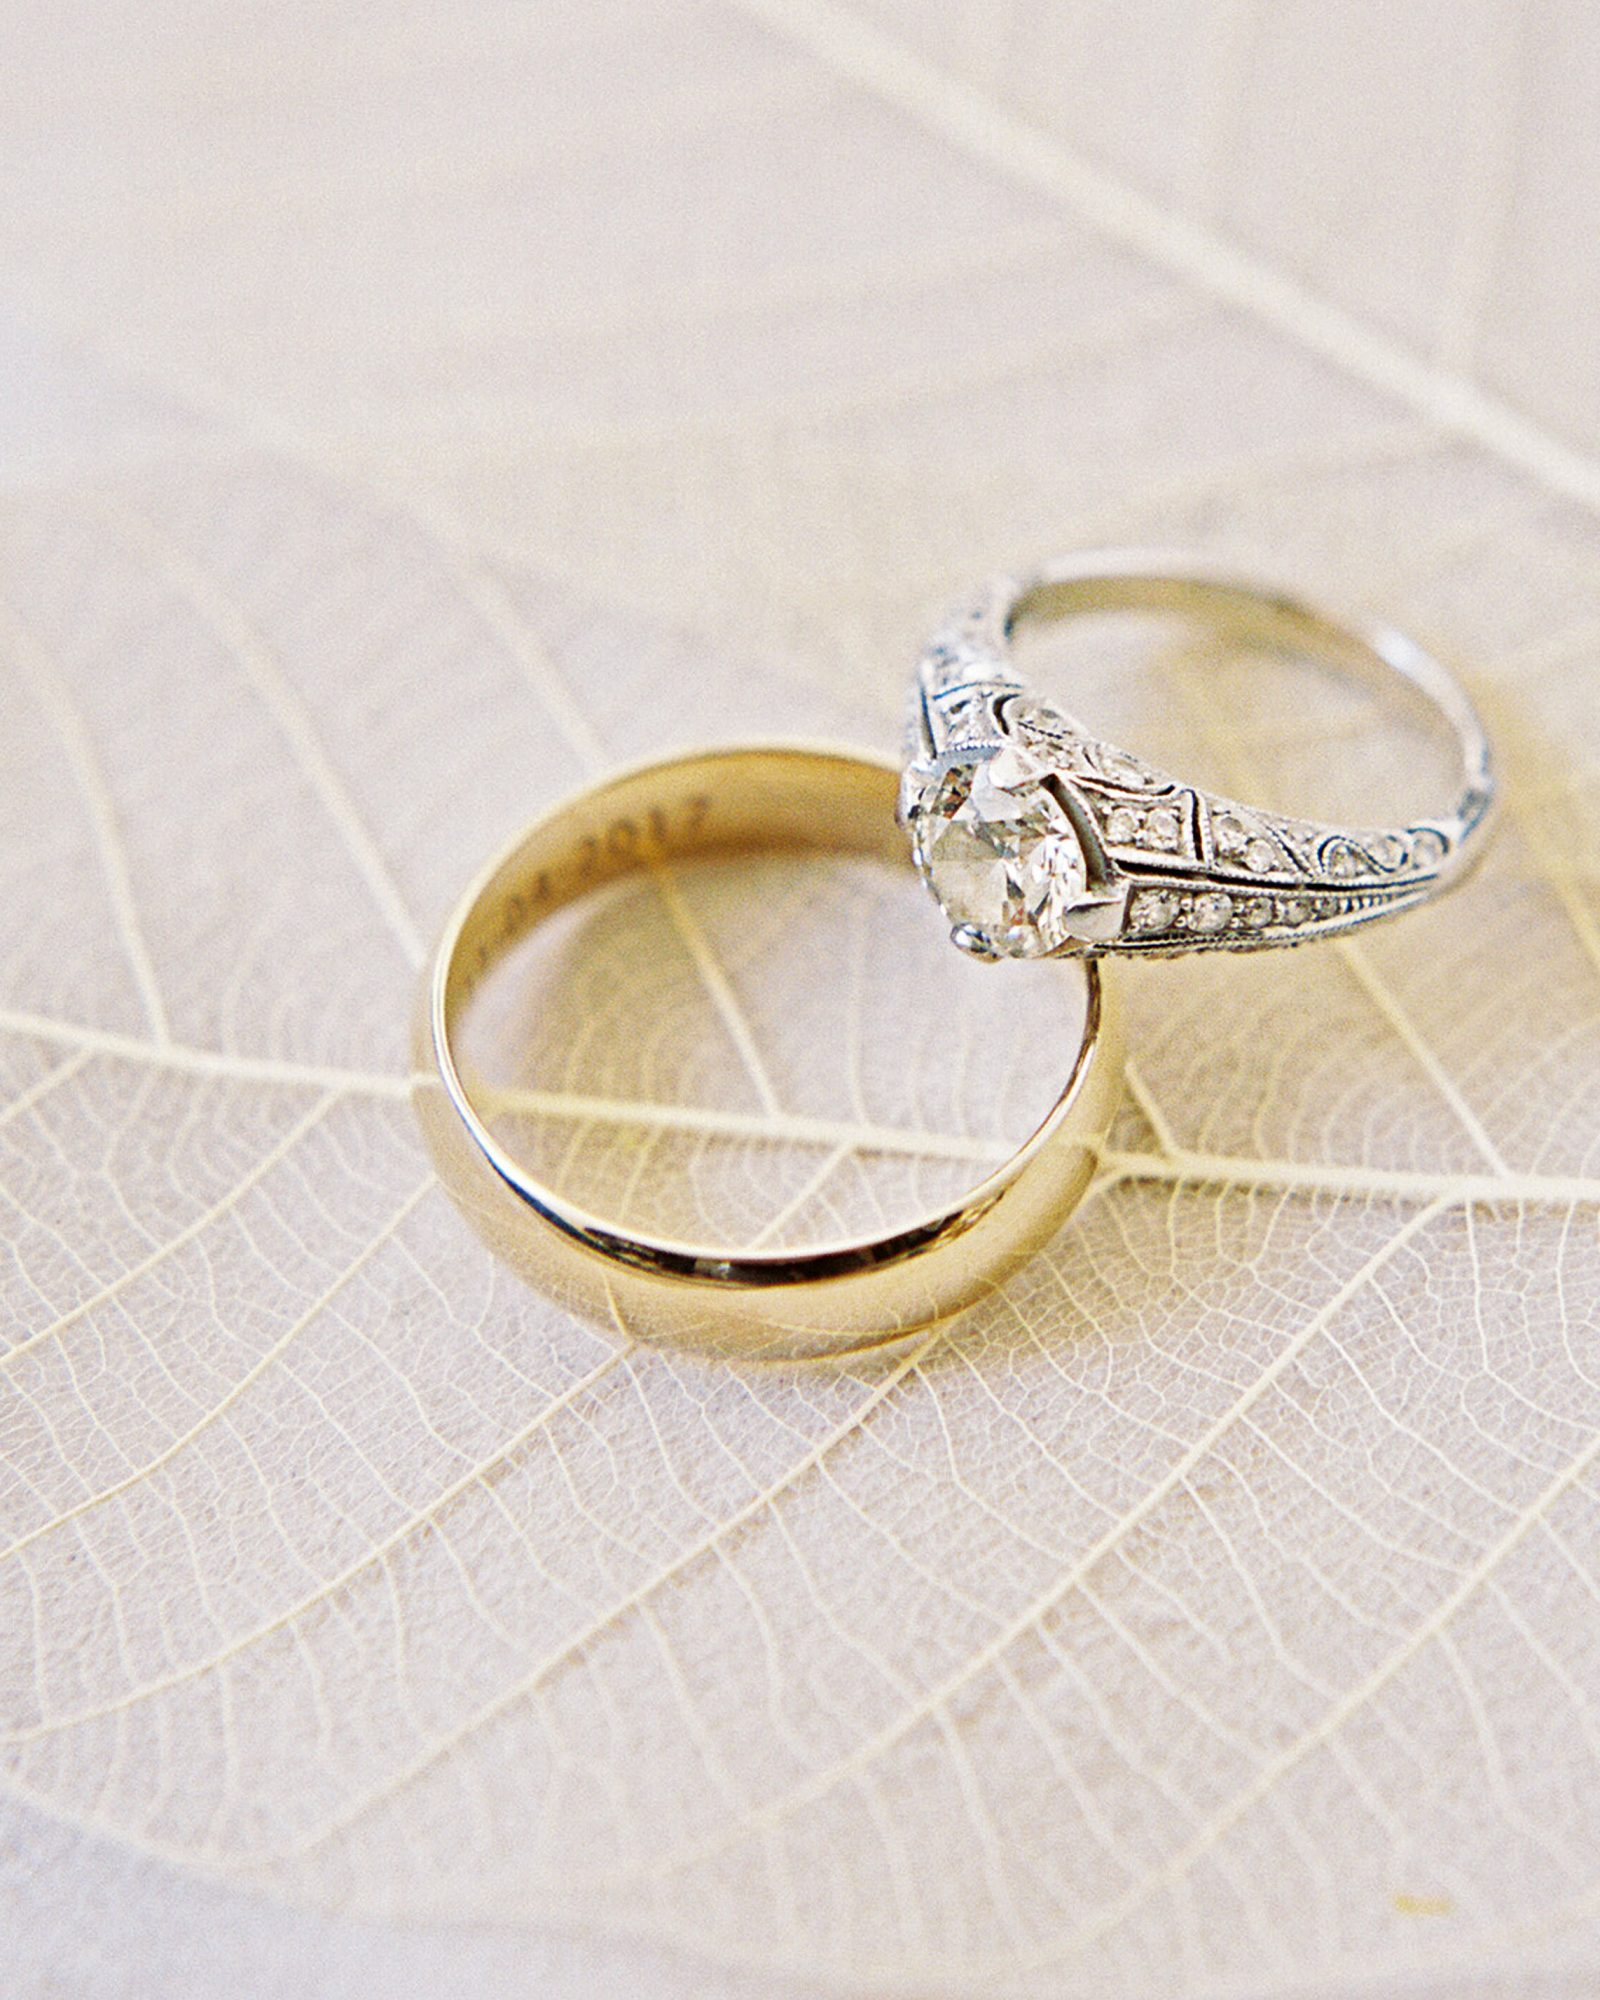 How To Choose A Mixed Metal Engagement Ring And Wedding Band Pairing Martha Stewart